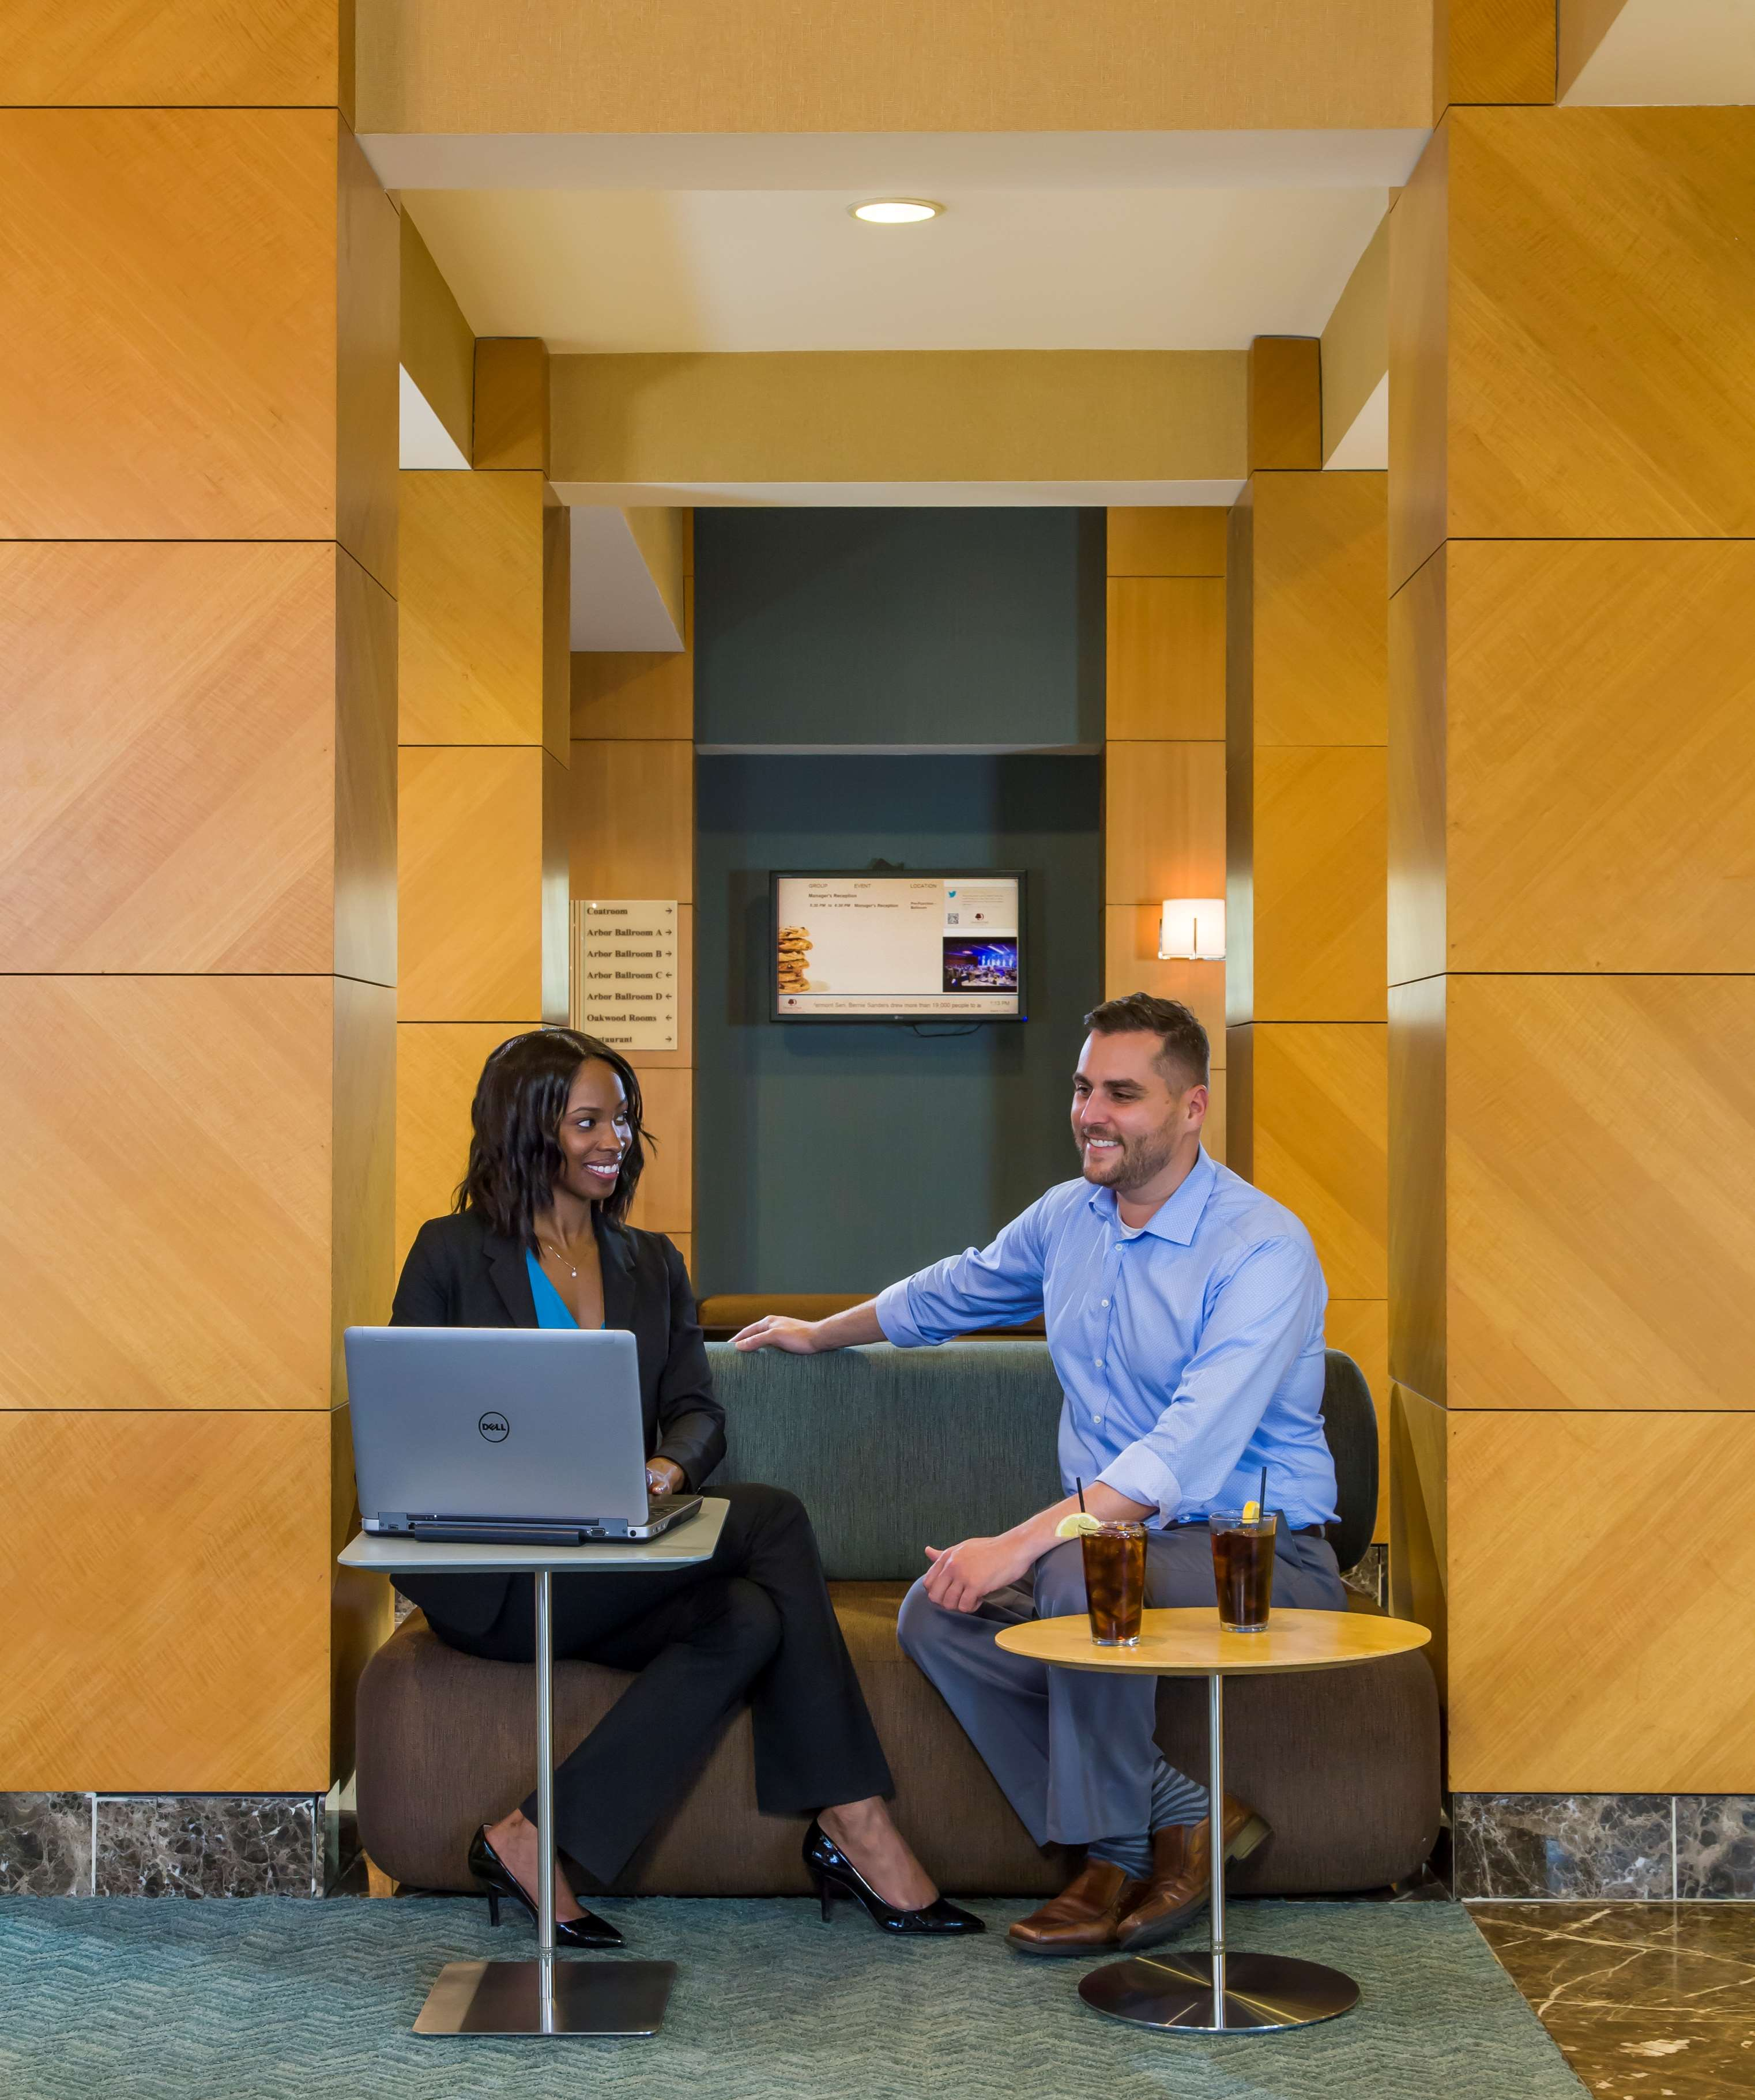 DoubleTree by Hilton Hotel Chicago - Arlington Heights image 1